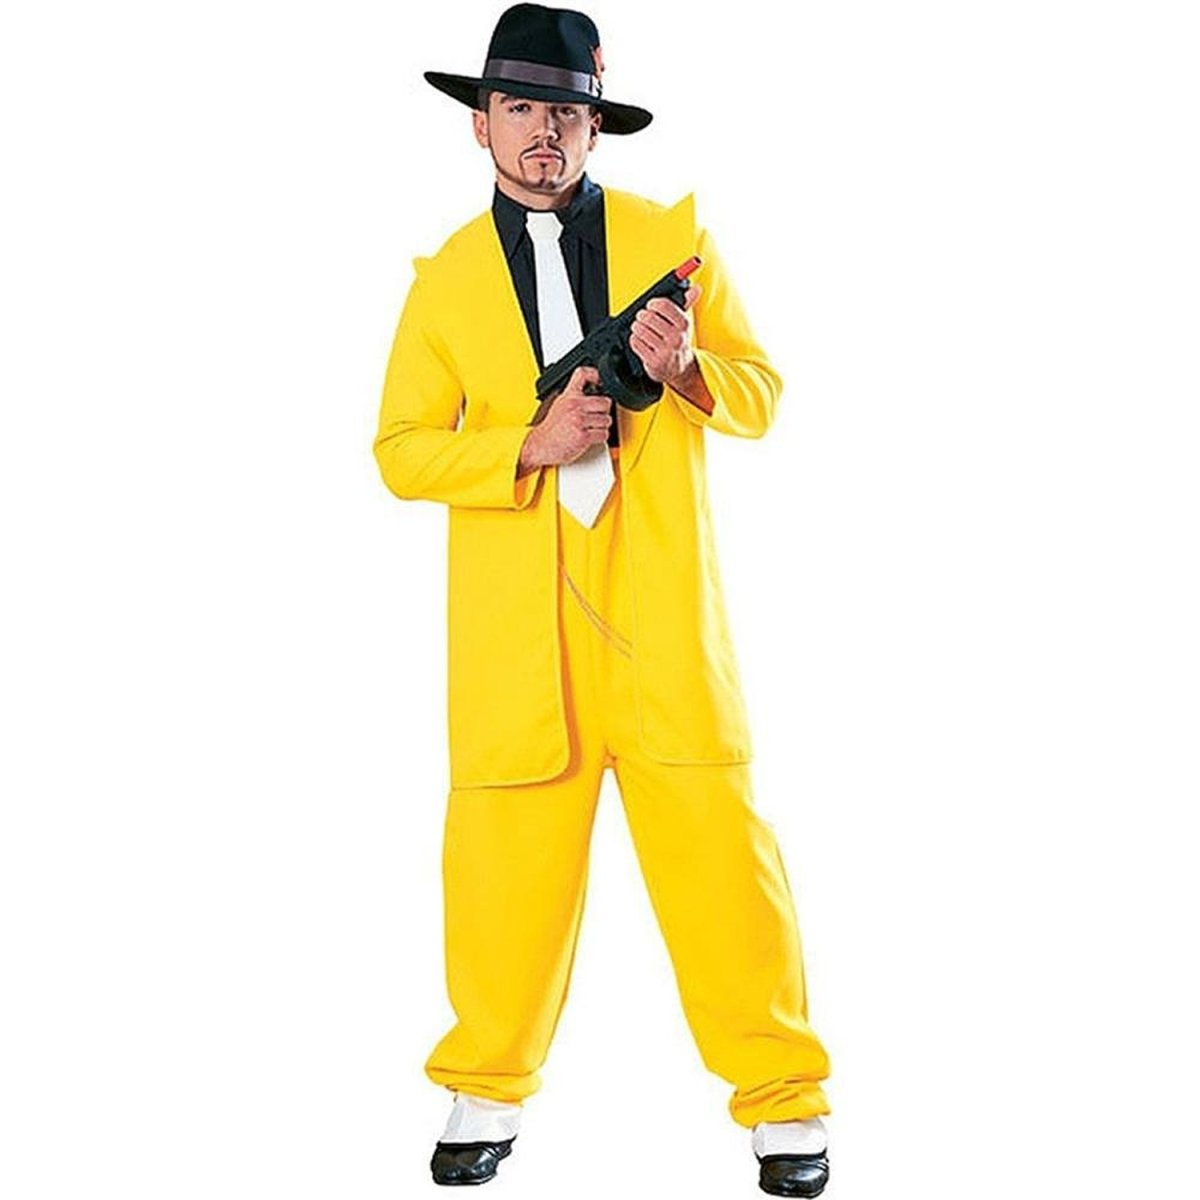 Costume ideas starting with the letter m holidappy add a green mask to the yellow zoot suit and youve got jim solutioingenieria